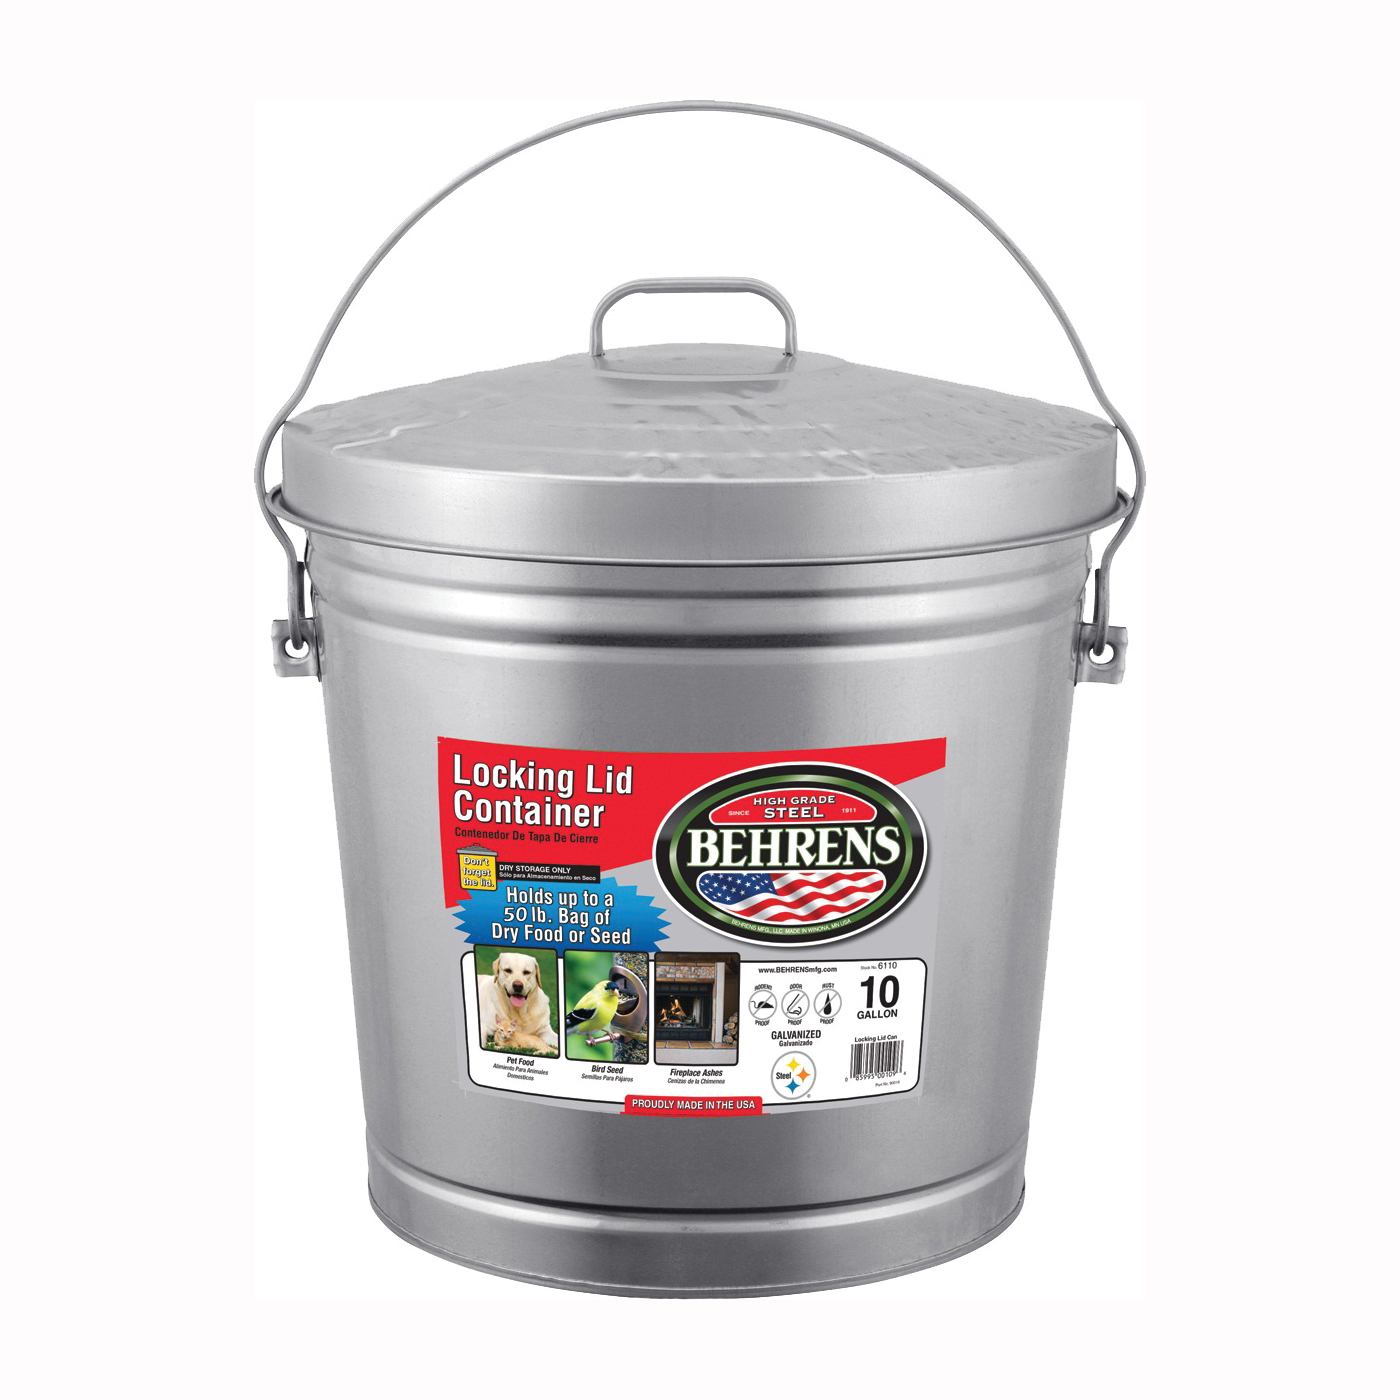 Picture of Behrens 6110 Locking Lid Can, 10 gal Capacity, Galvanized Steel, Silver